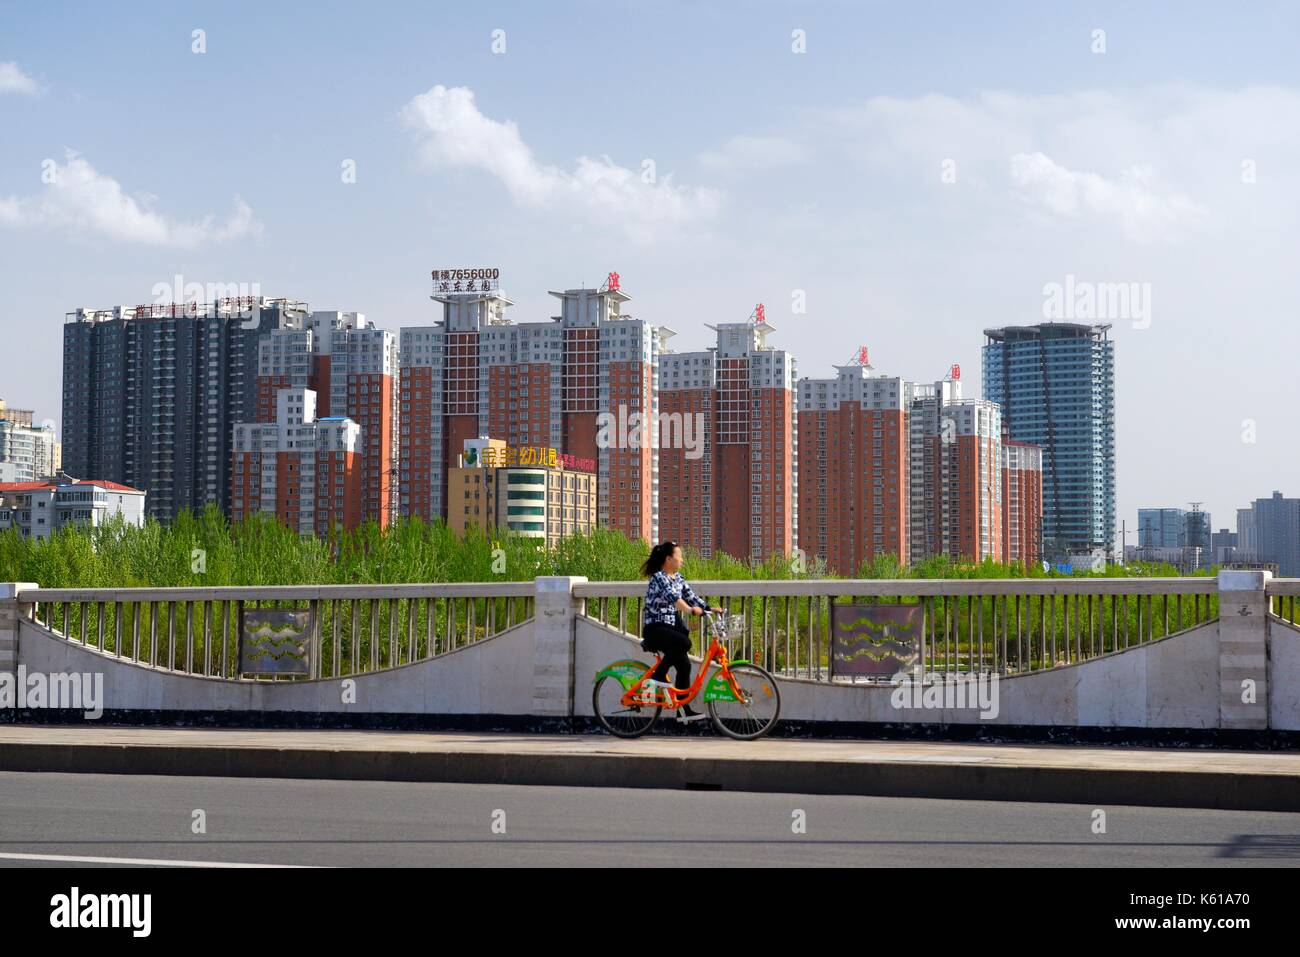 Post-industrial changing City of Taiyuan, Shanxi, China. Cyclist rides bike share in clear clean air past new apartment blocks - Stock Image